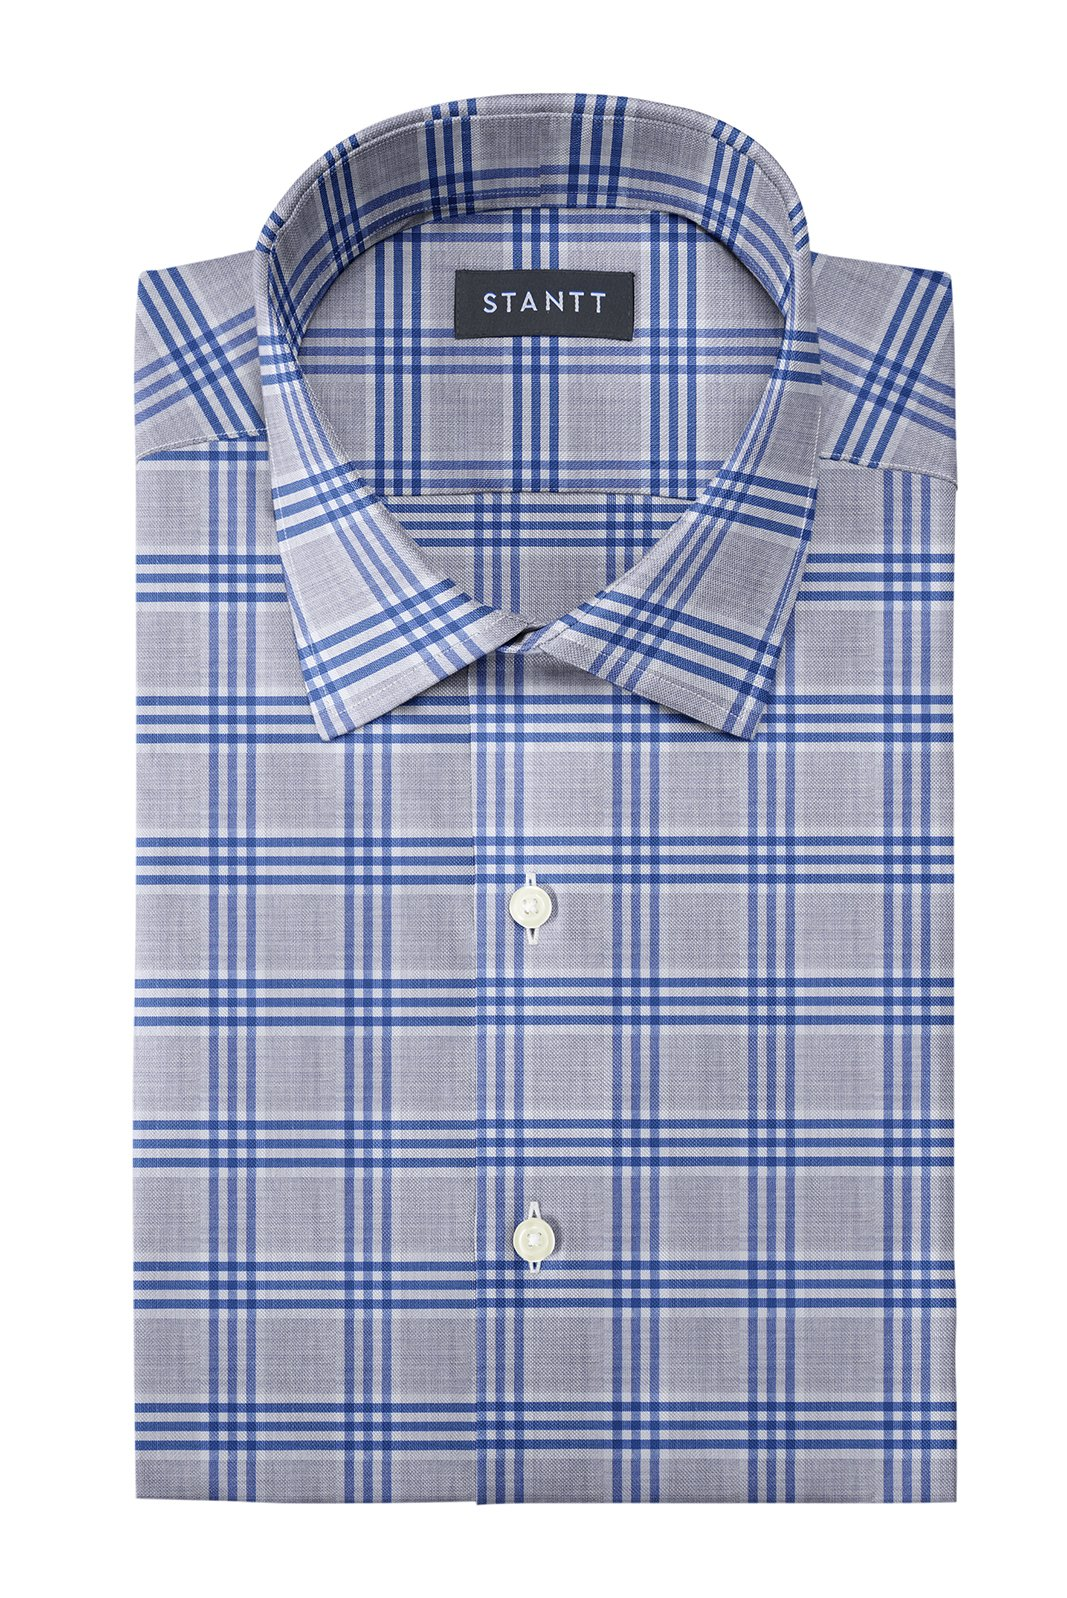 Melange Grey and Blue Box Check: Modified-Spread Collar, French Cuff